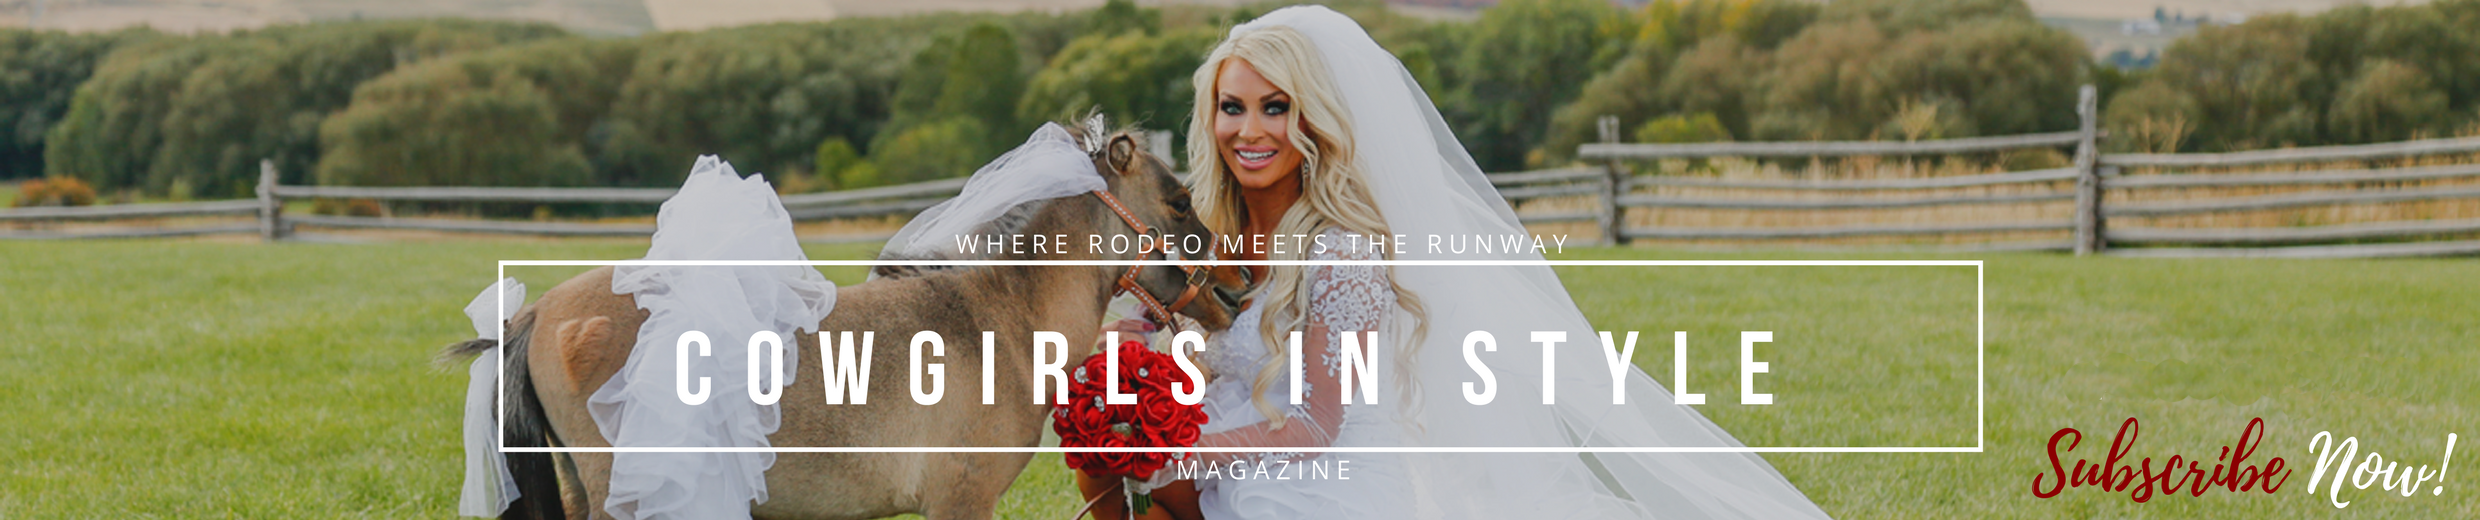 Cowgirls In Style Magazine - Page 2 of 11 - Cowgirl Fashion - Rodeo, Pageantry, everything Cowgirl